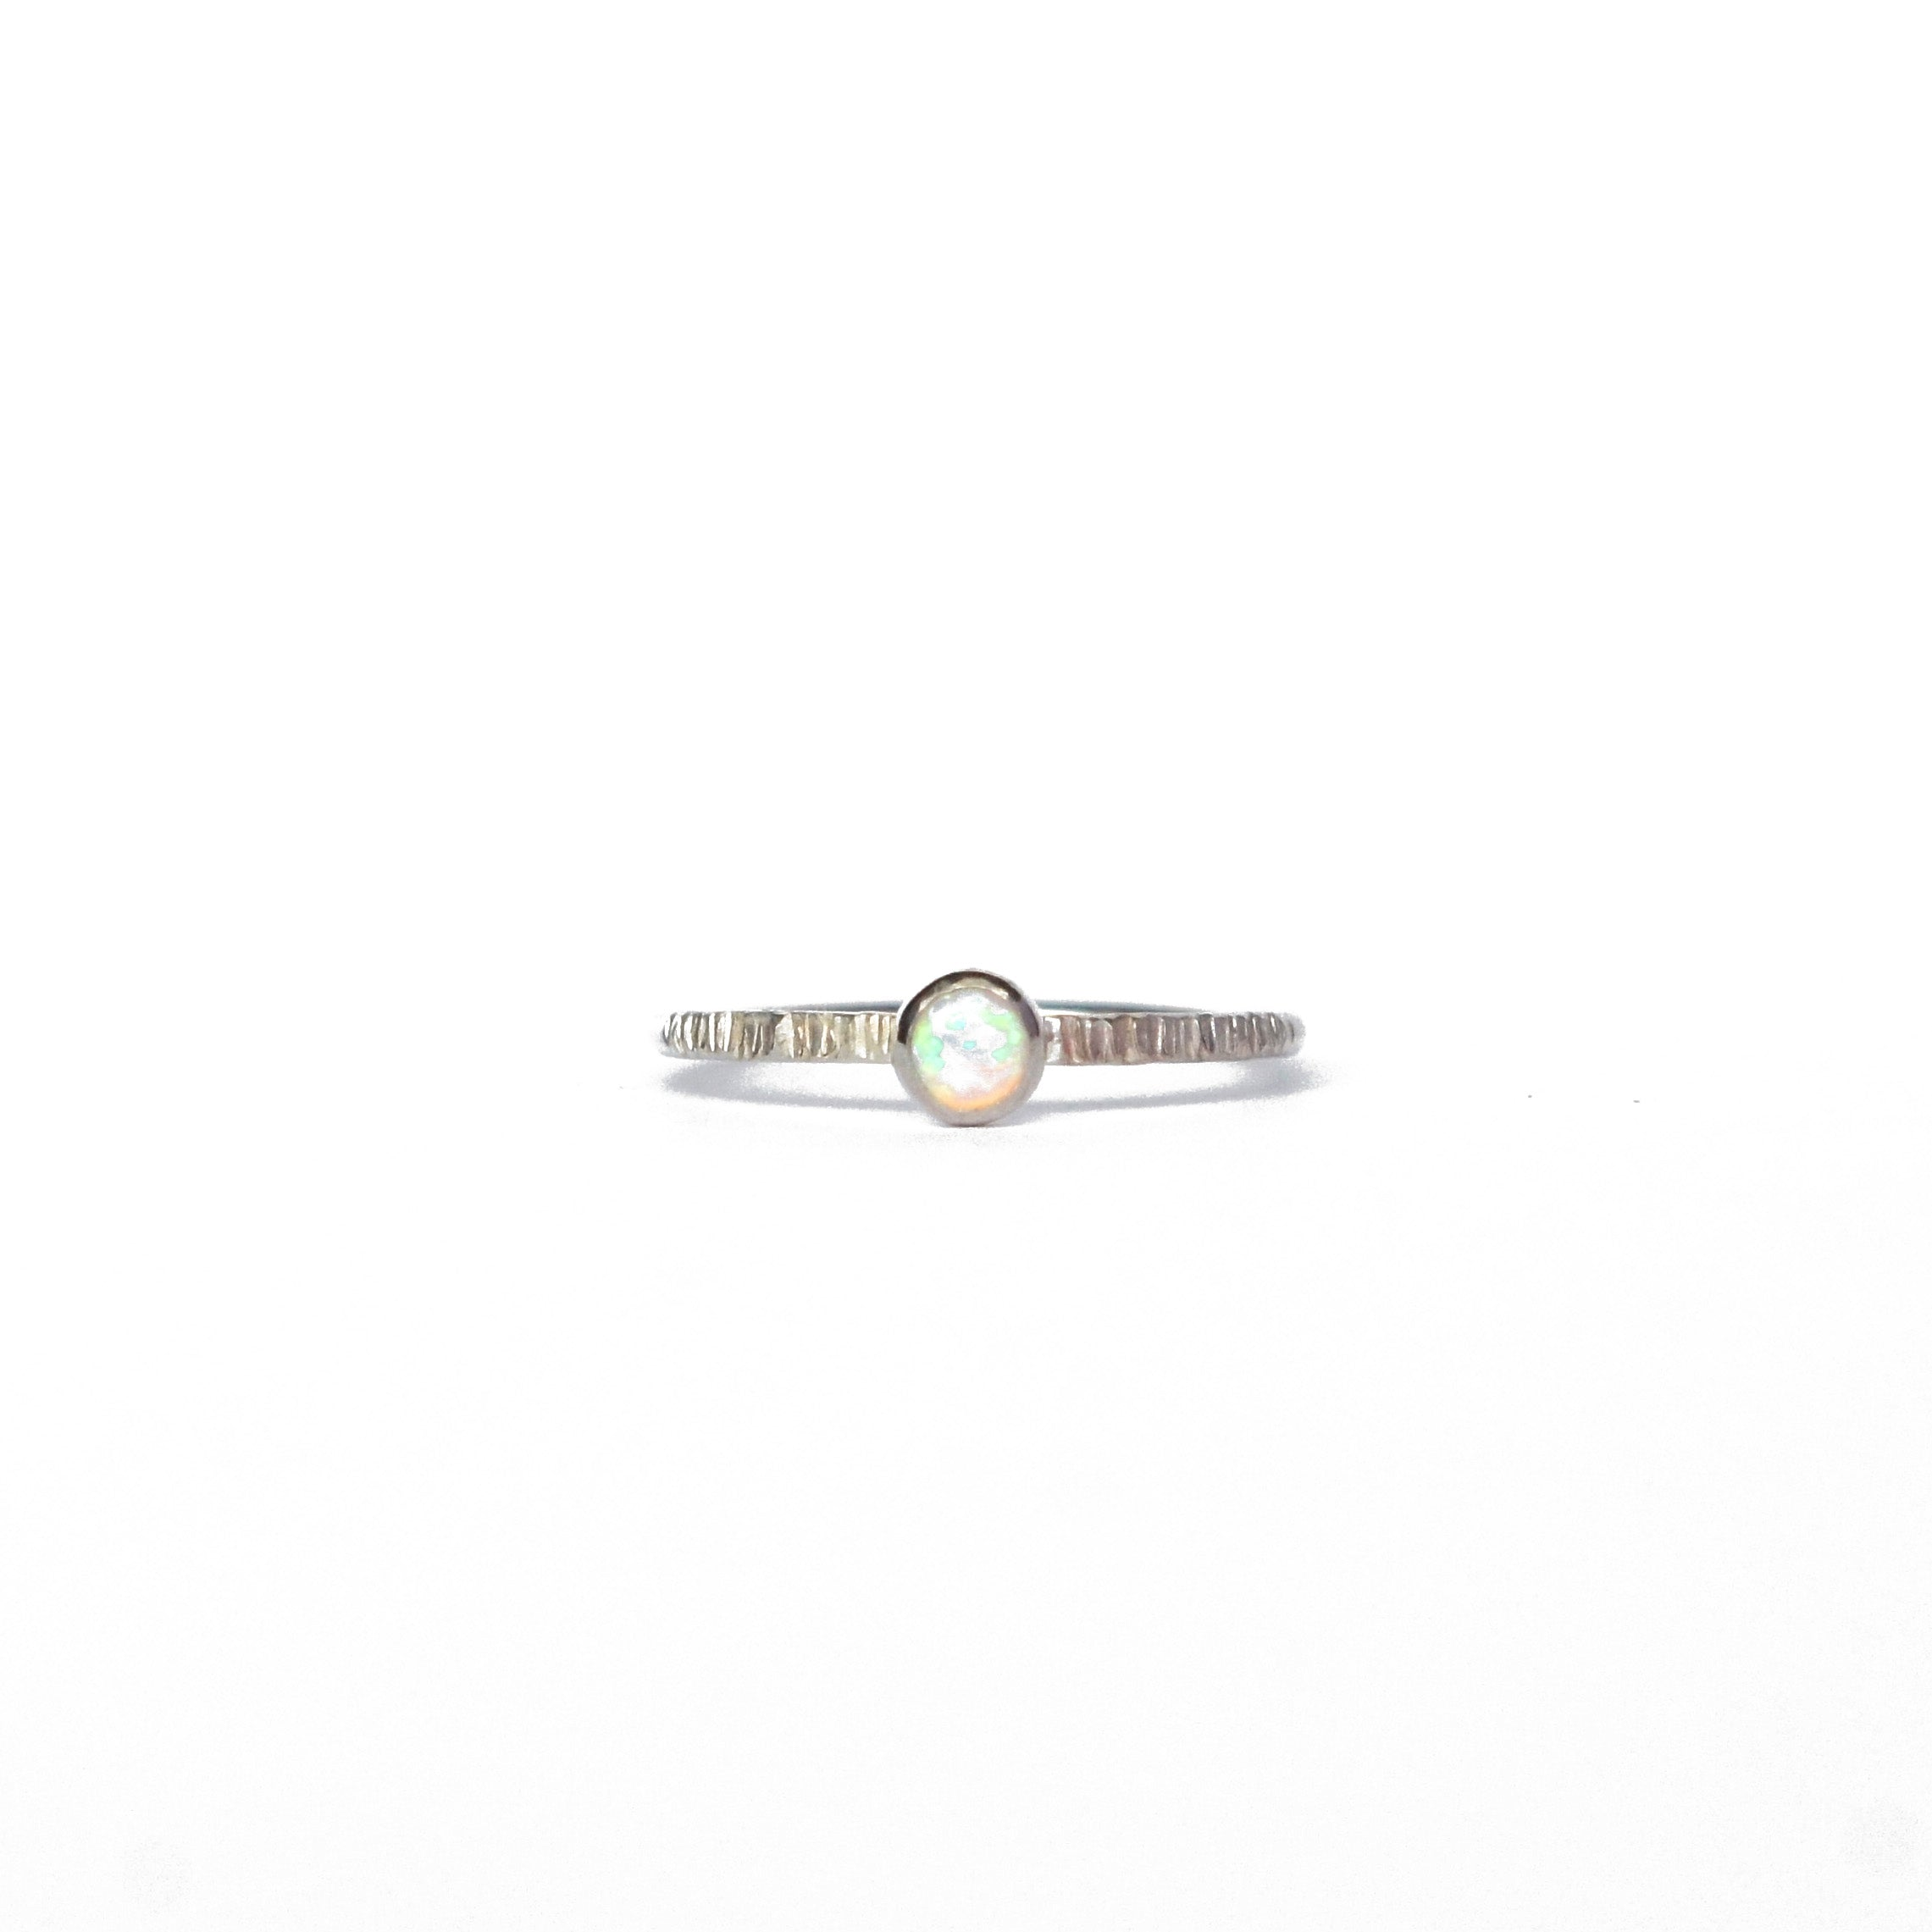 Emily Eliza Arlotte Handcrafted Fine Jewellery - Sterling Silver Iridiscent Opal Dainty Galaxy Ring